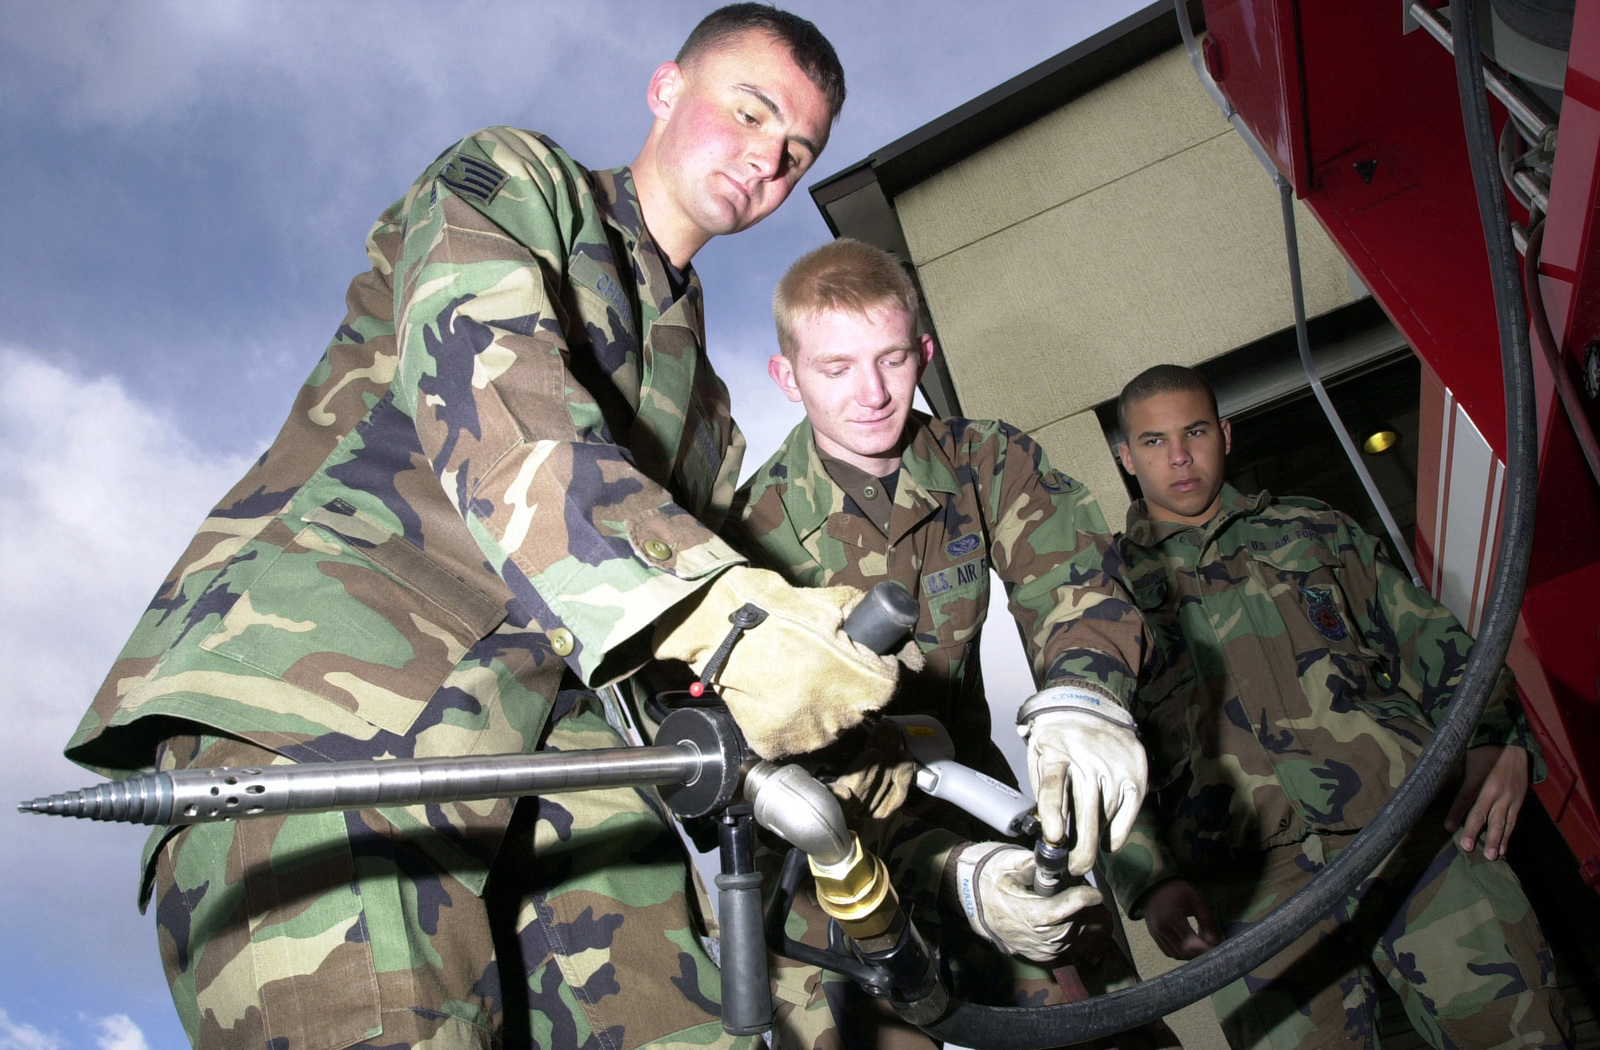 US Air Force (USAF) Fire Fighters STAFF Sergeant (SSGT) Michael Champion, left, AIRMAN (AMN) Jacob Norris, center and AIRMAN First Class (A1C) Emilio Cruz, all with the 31st Civil Engineer Squadron (CES), Fire Protection Flight, connect a Skin Penetrating Agent Application Tool (SPAAT) to a hose used in fighting aircraft fires